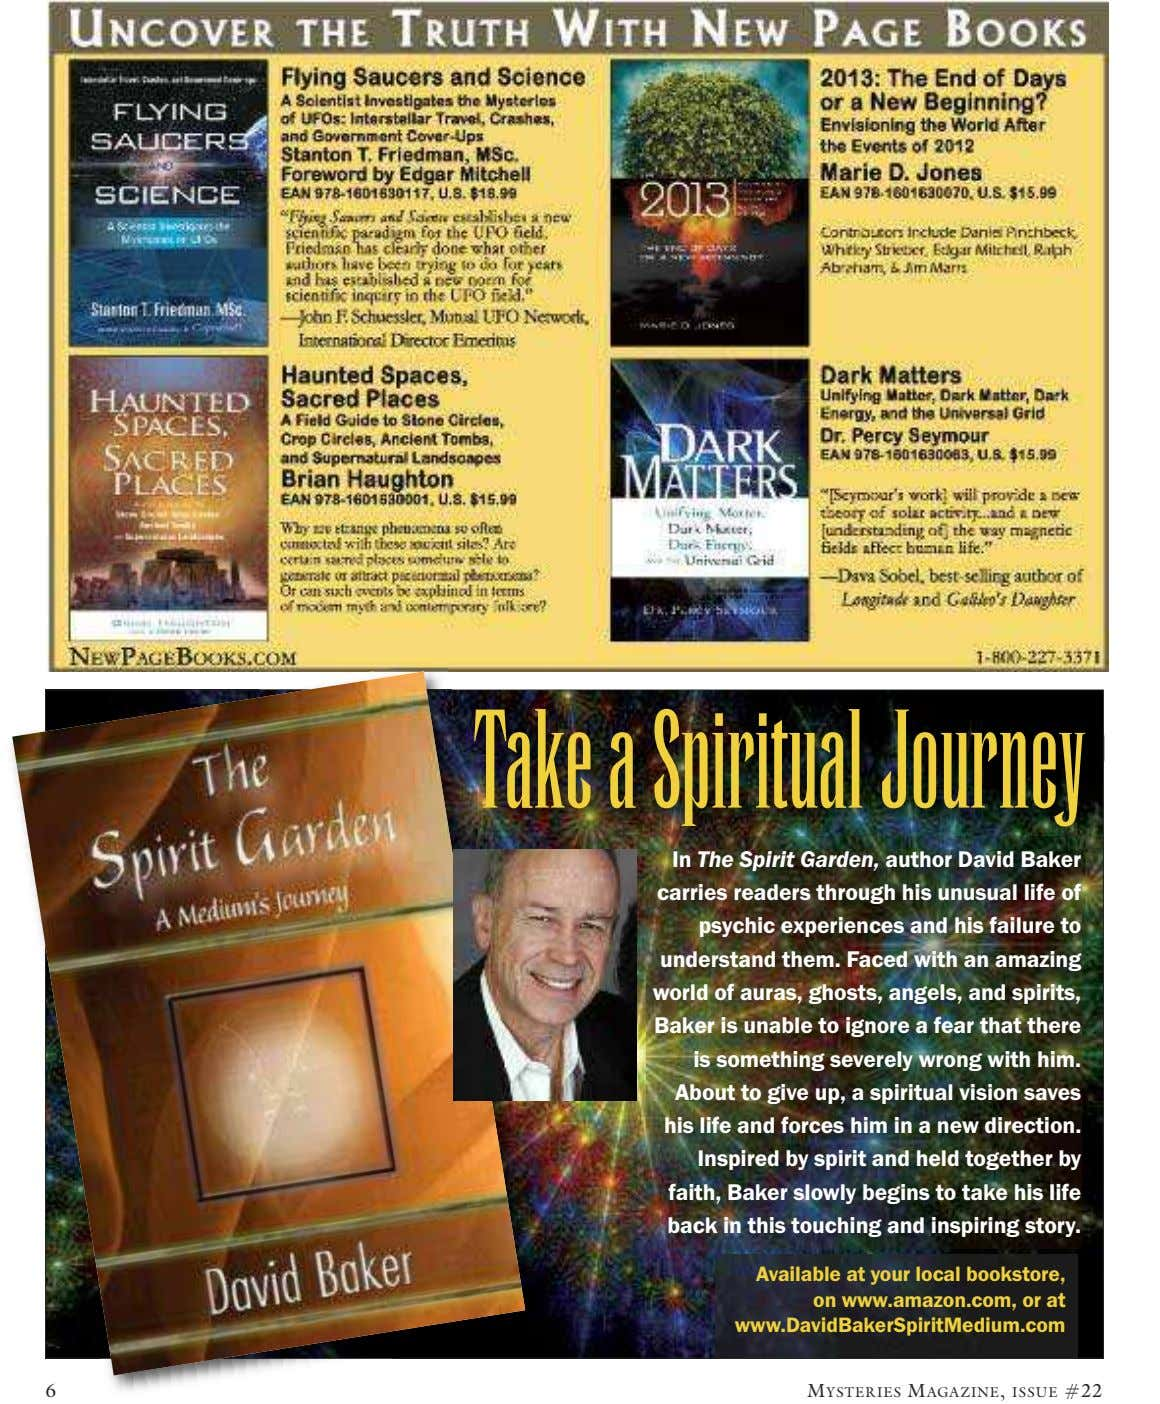 Take a Spiritual Journey In The Spirit Garden, author David Baker carries readers through his